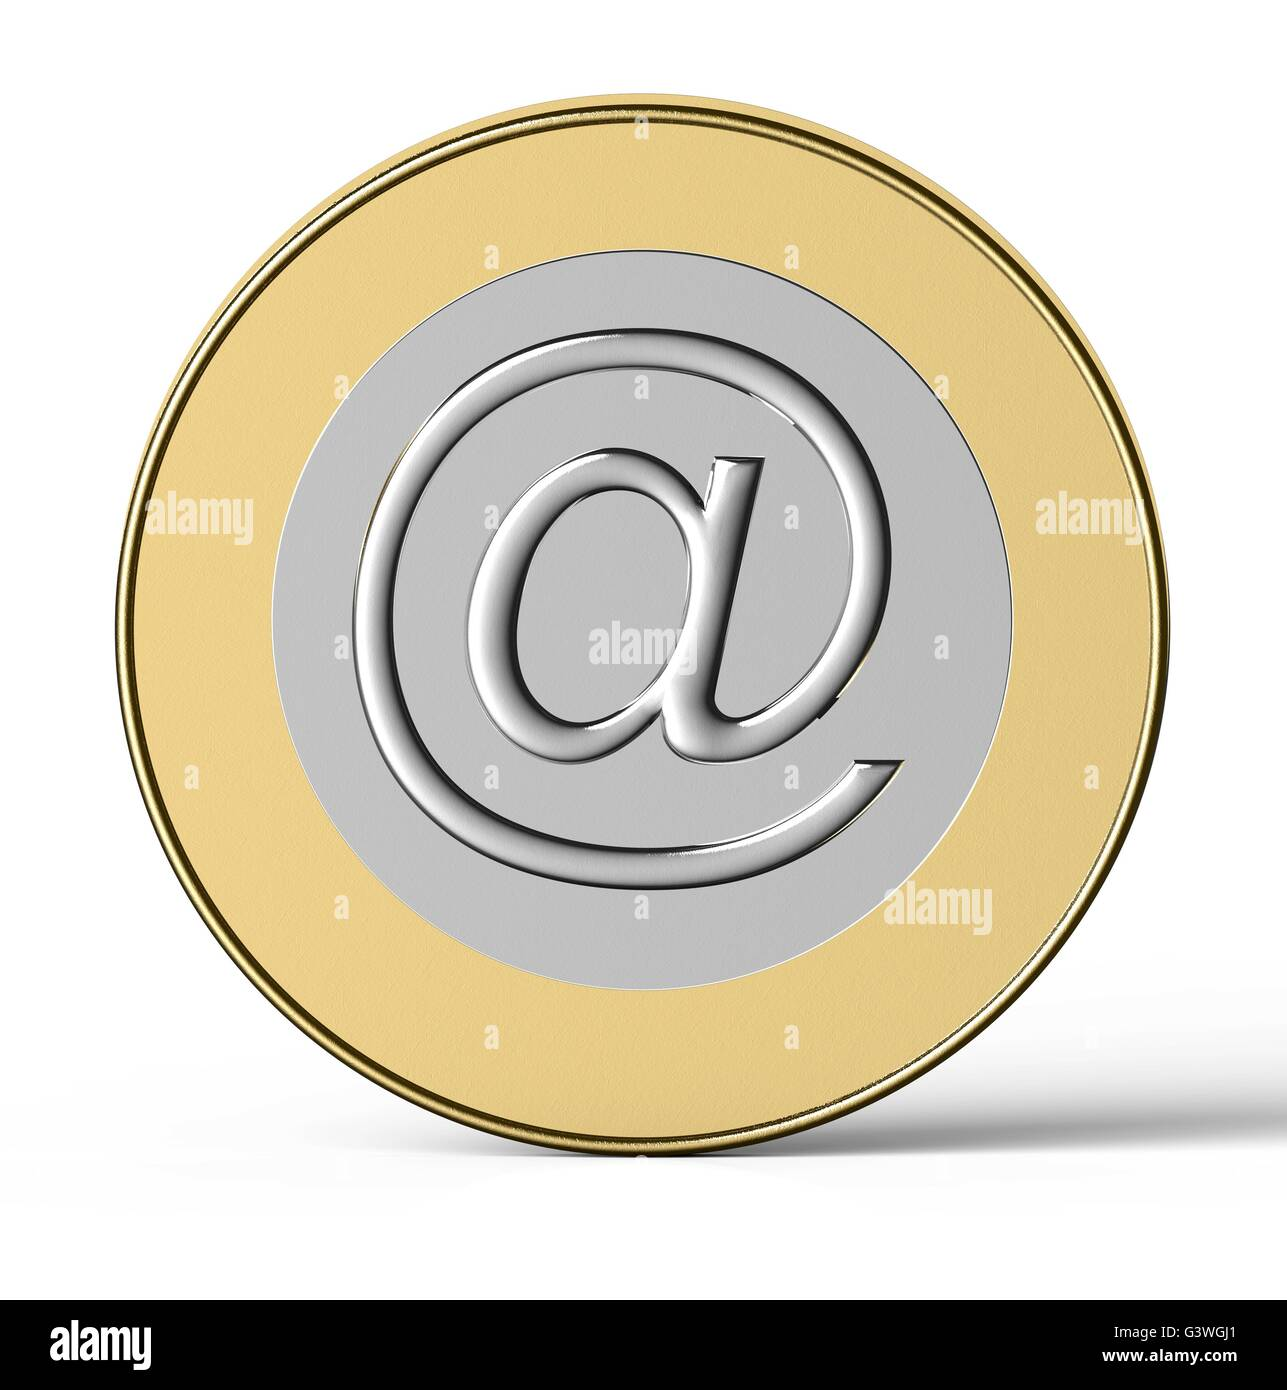 internet coin isolated on a white back ground Stock Photo